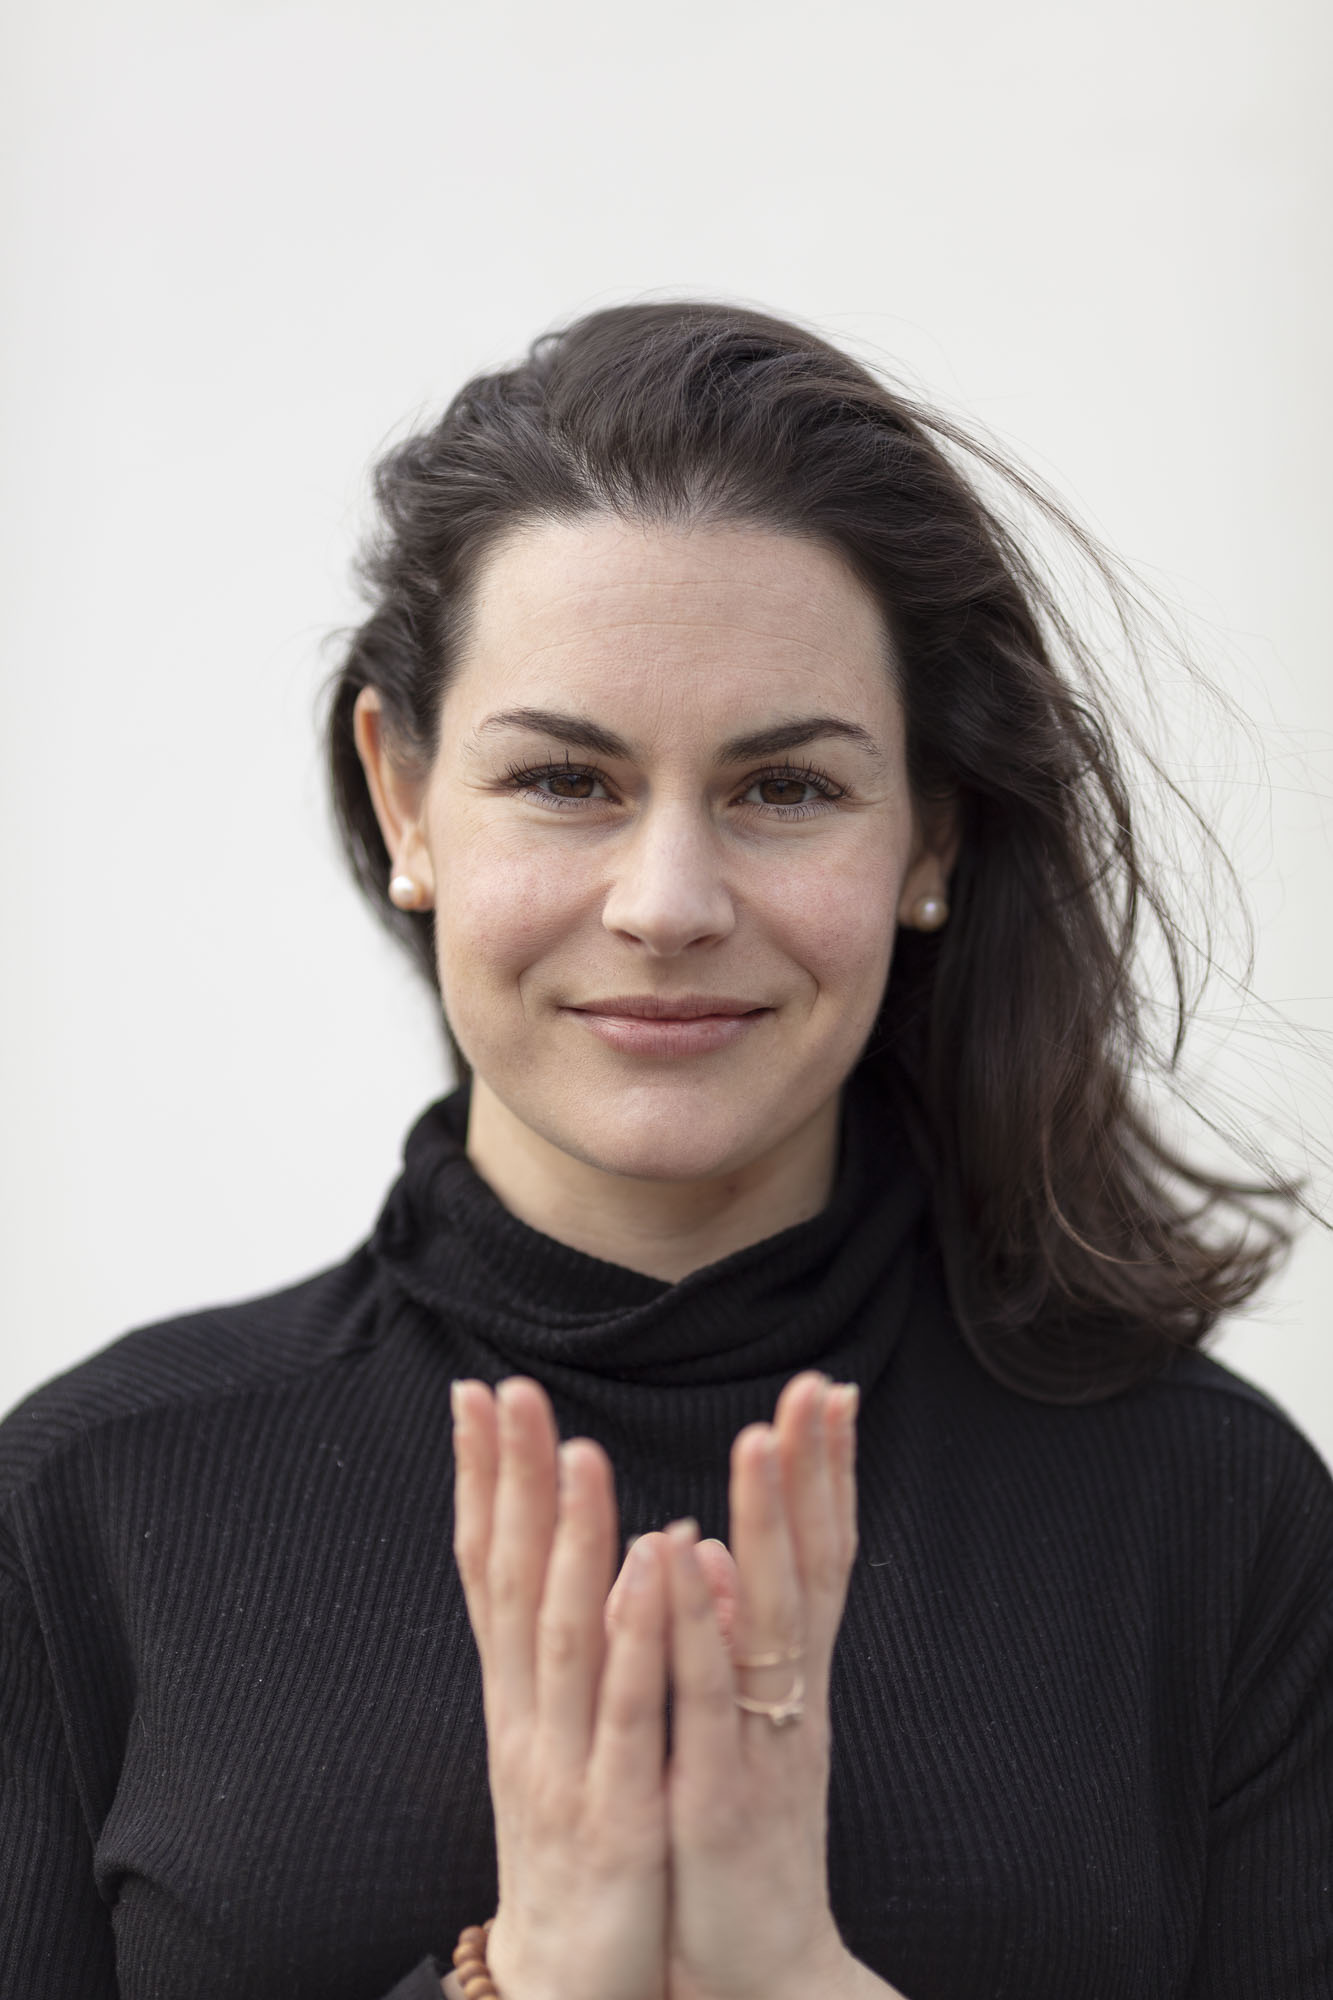 a light skinned woman with dark hair that is wind blown holds cupped hands in front of her